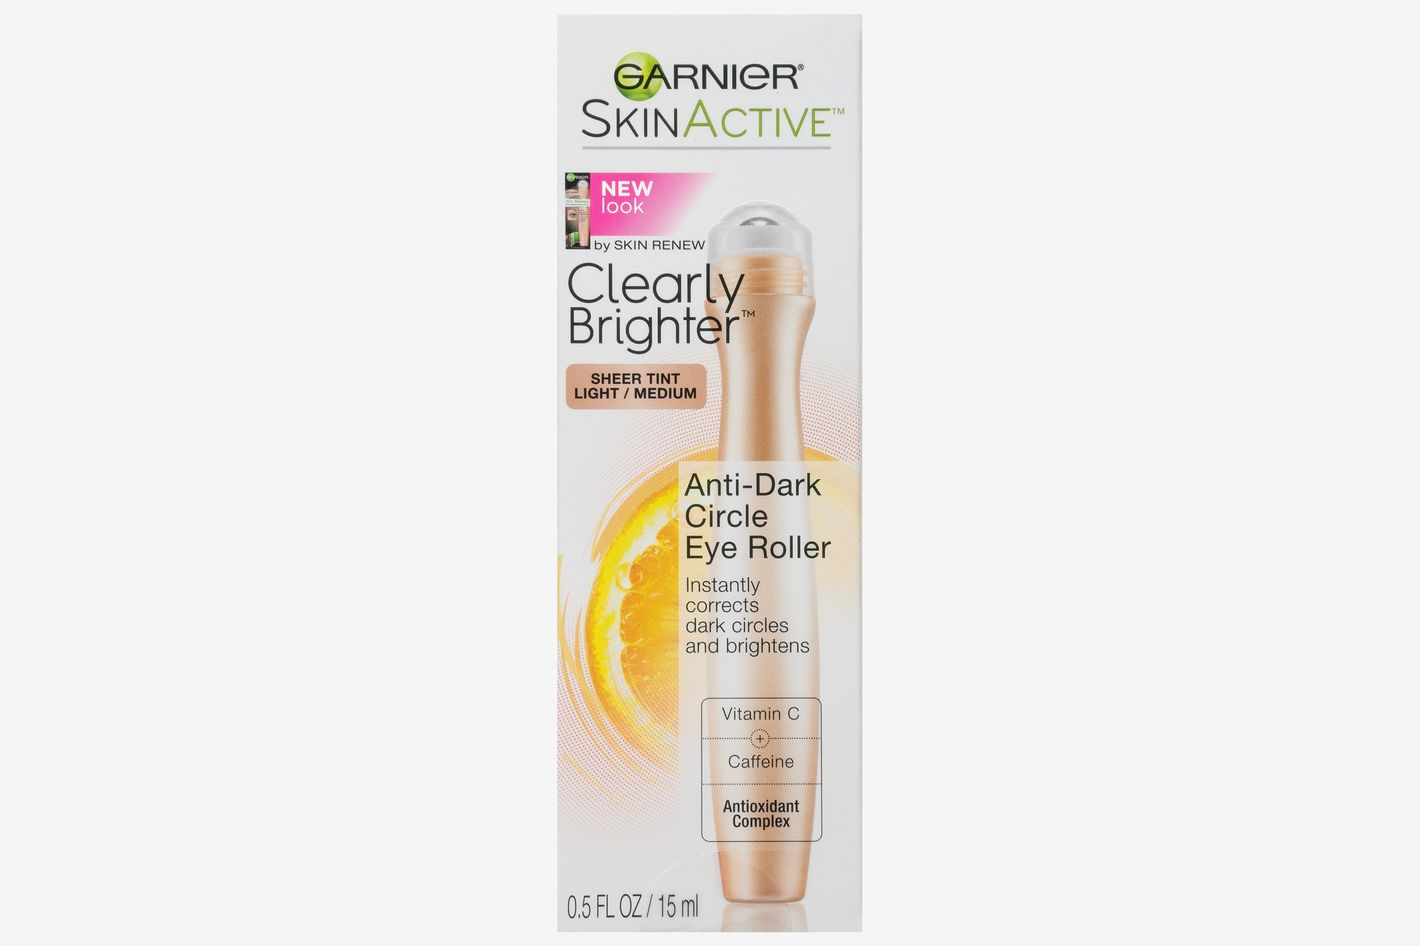 Garnier SkinActive Clearly Brighter Sheer Tinted Roller